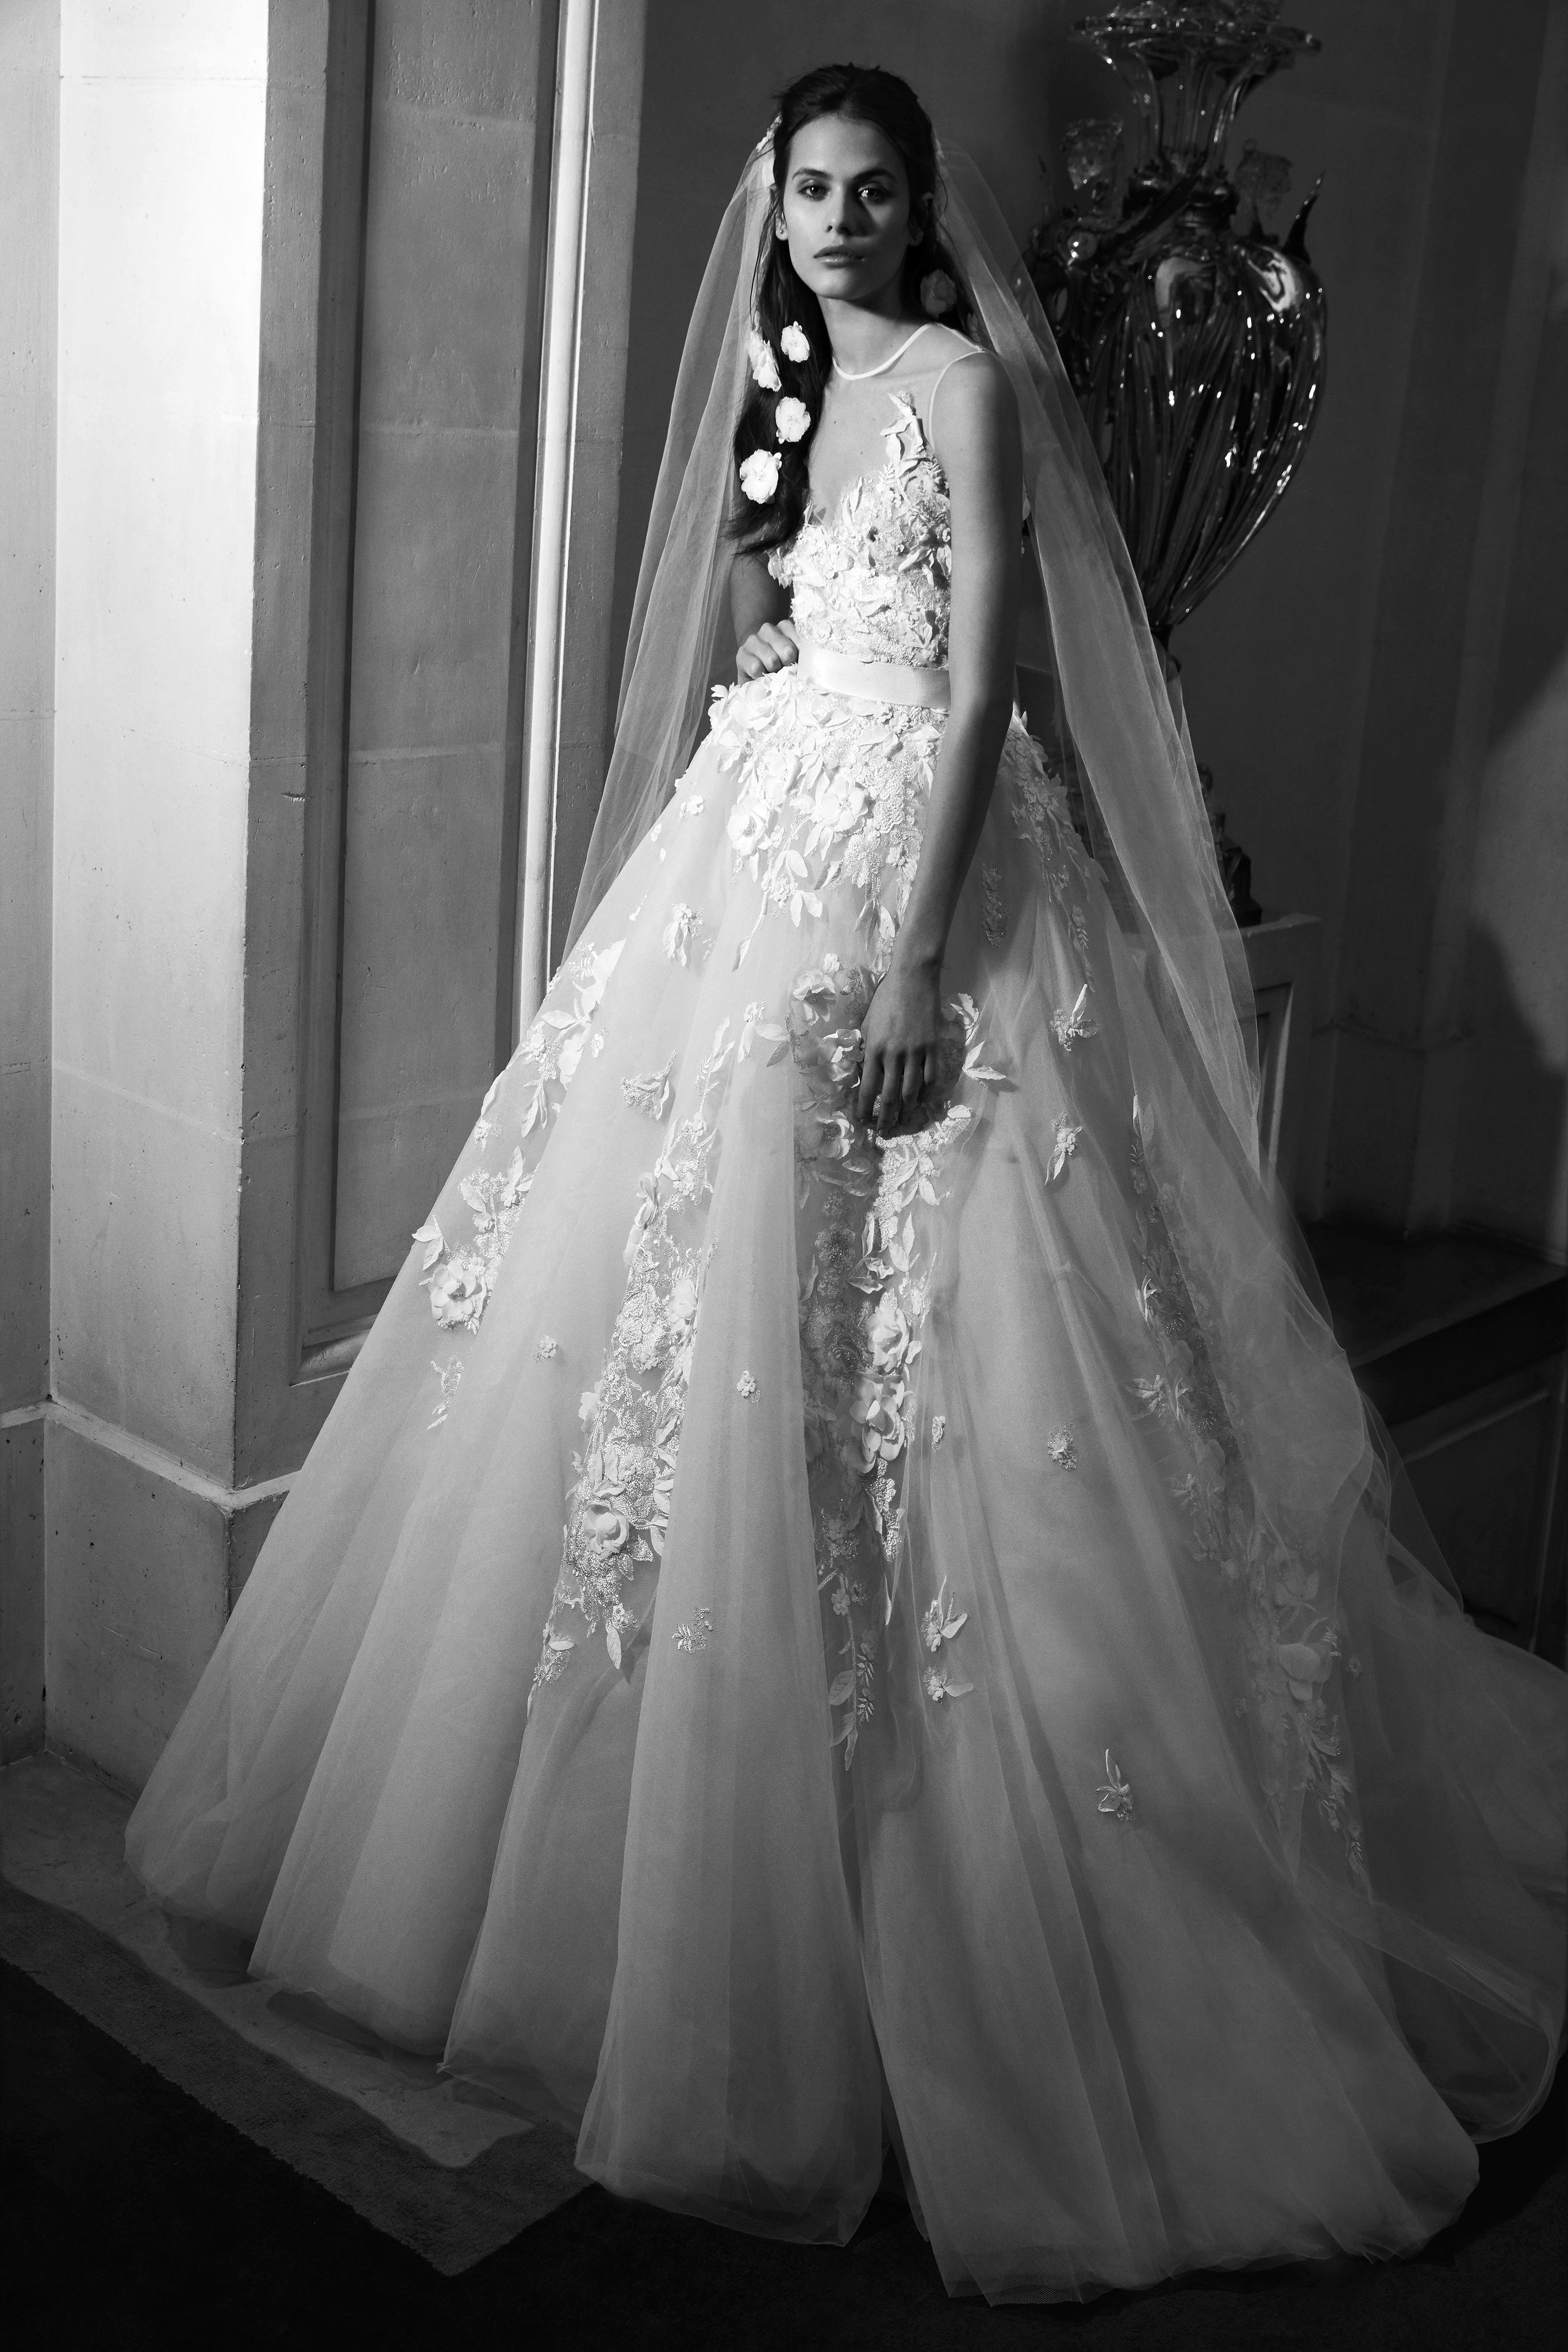 elie saab wedding dress spring 2019 illusion floral embroidery ballgown